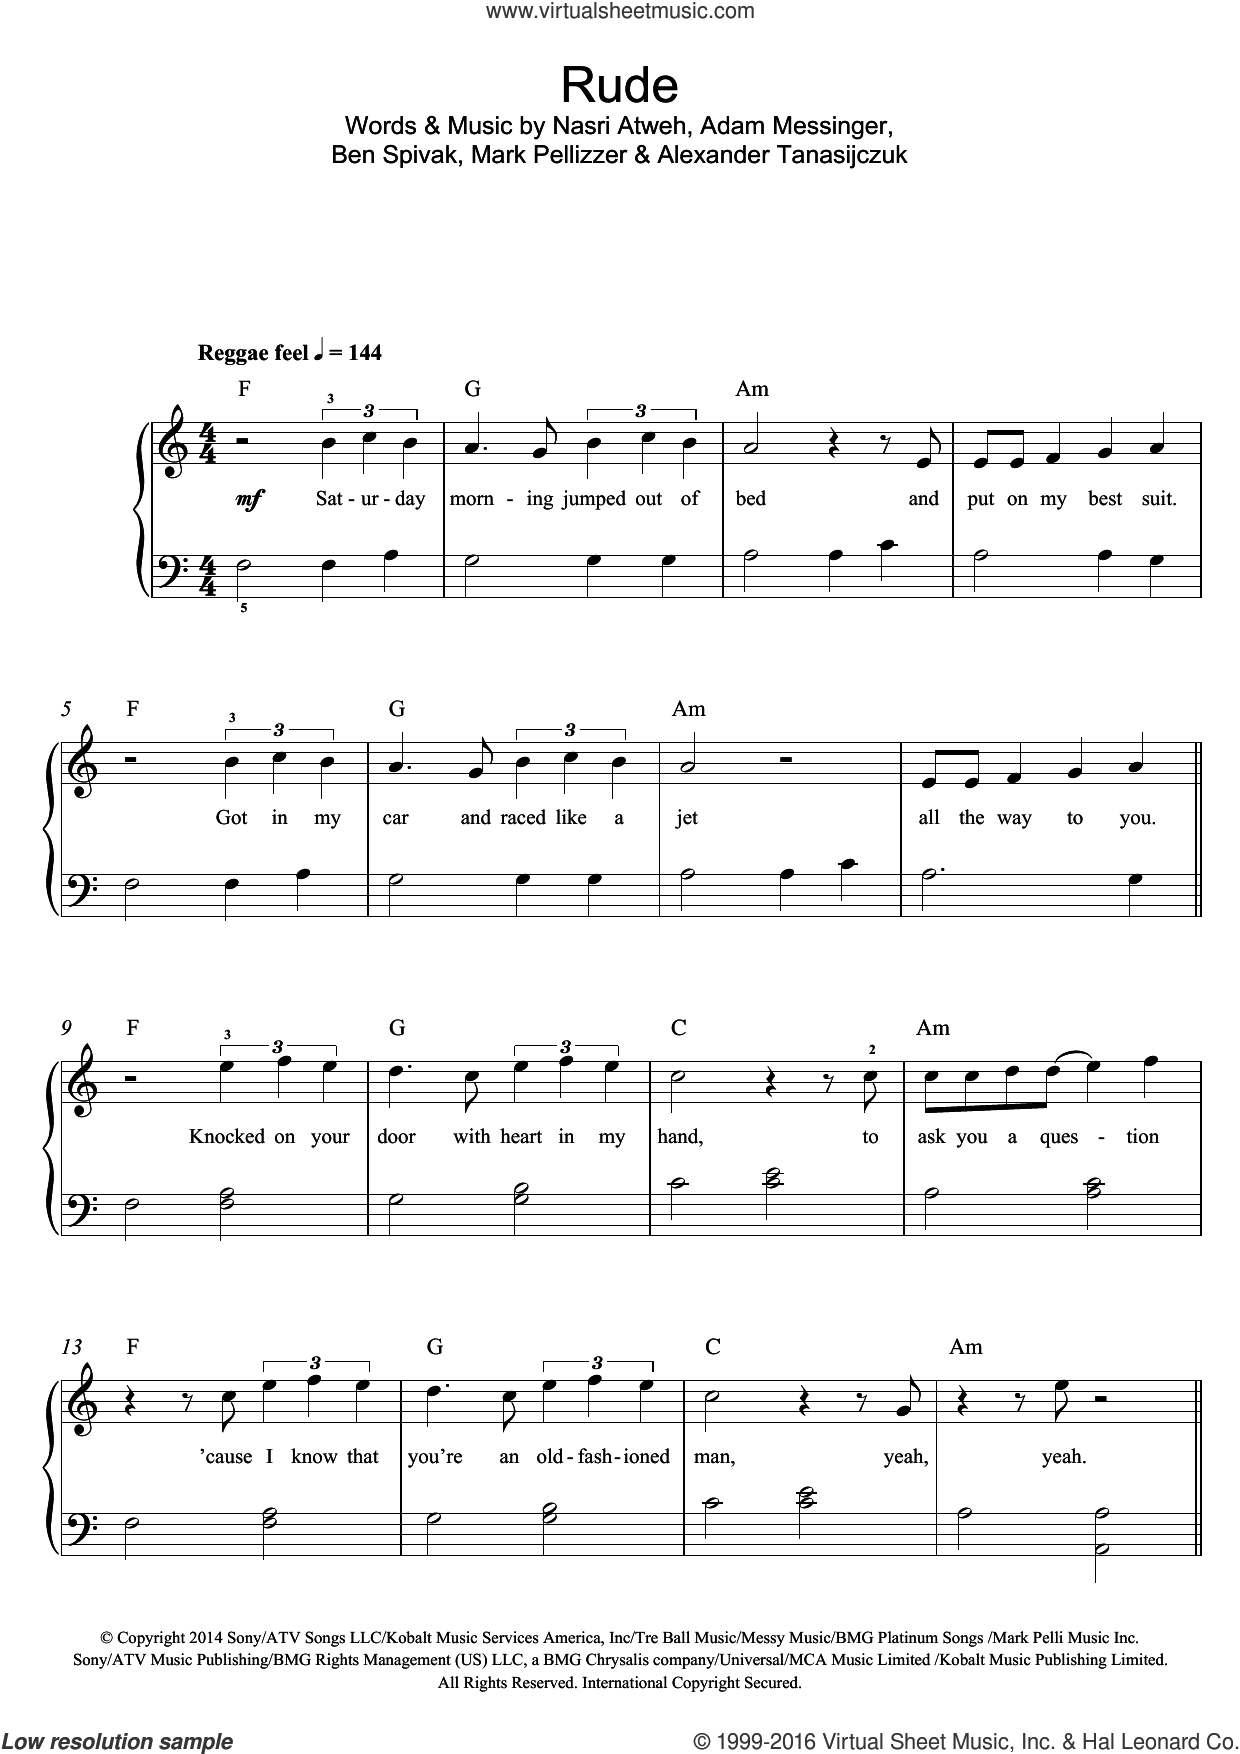 Rude sheet music for piano solo (beginners) by MAGIC!, Adam Messinger, Alexander Tanasijczuk, Ben Spivak, Mark Pellizzer and Nasri Atweh, beginner piano (beginners)